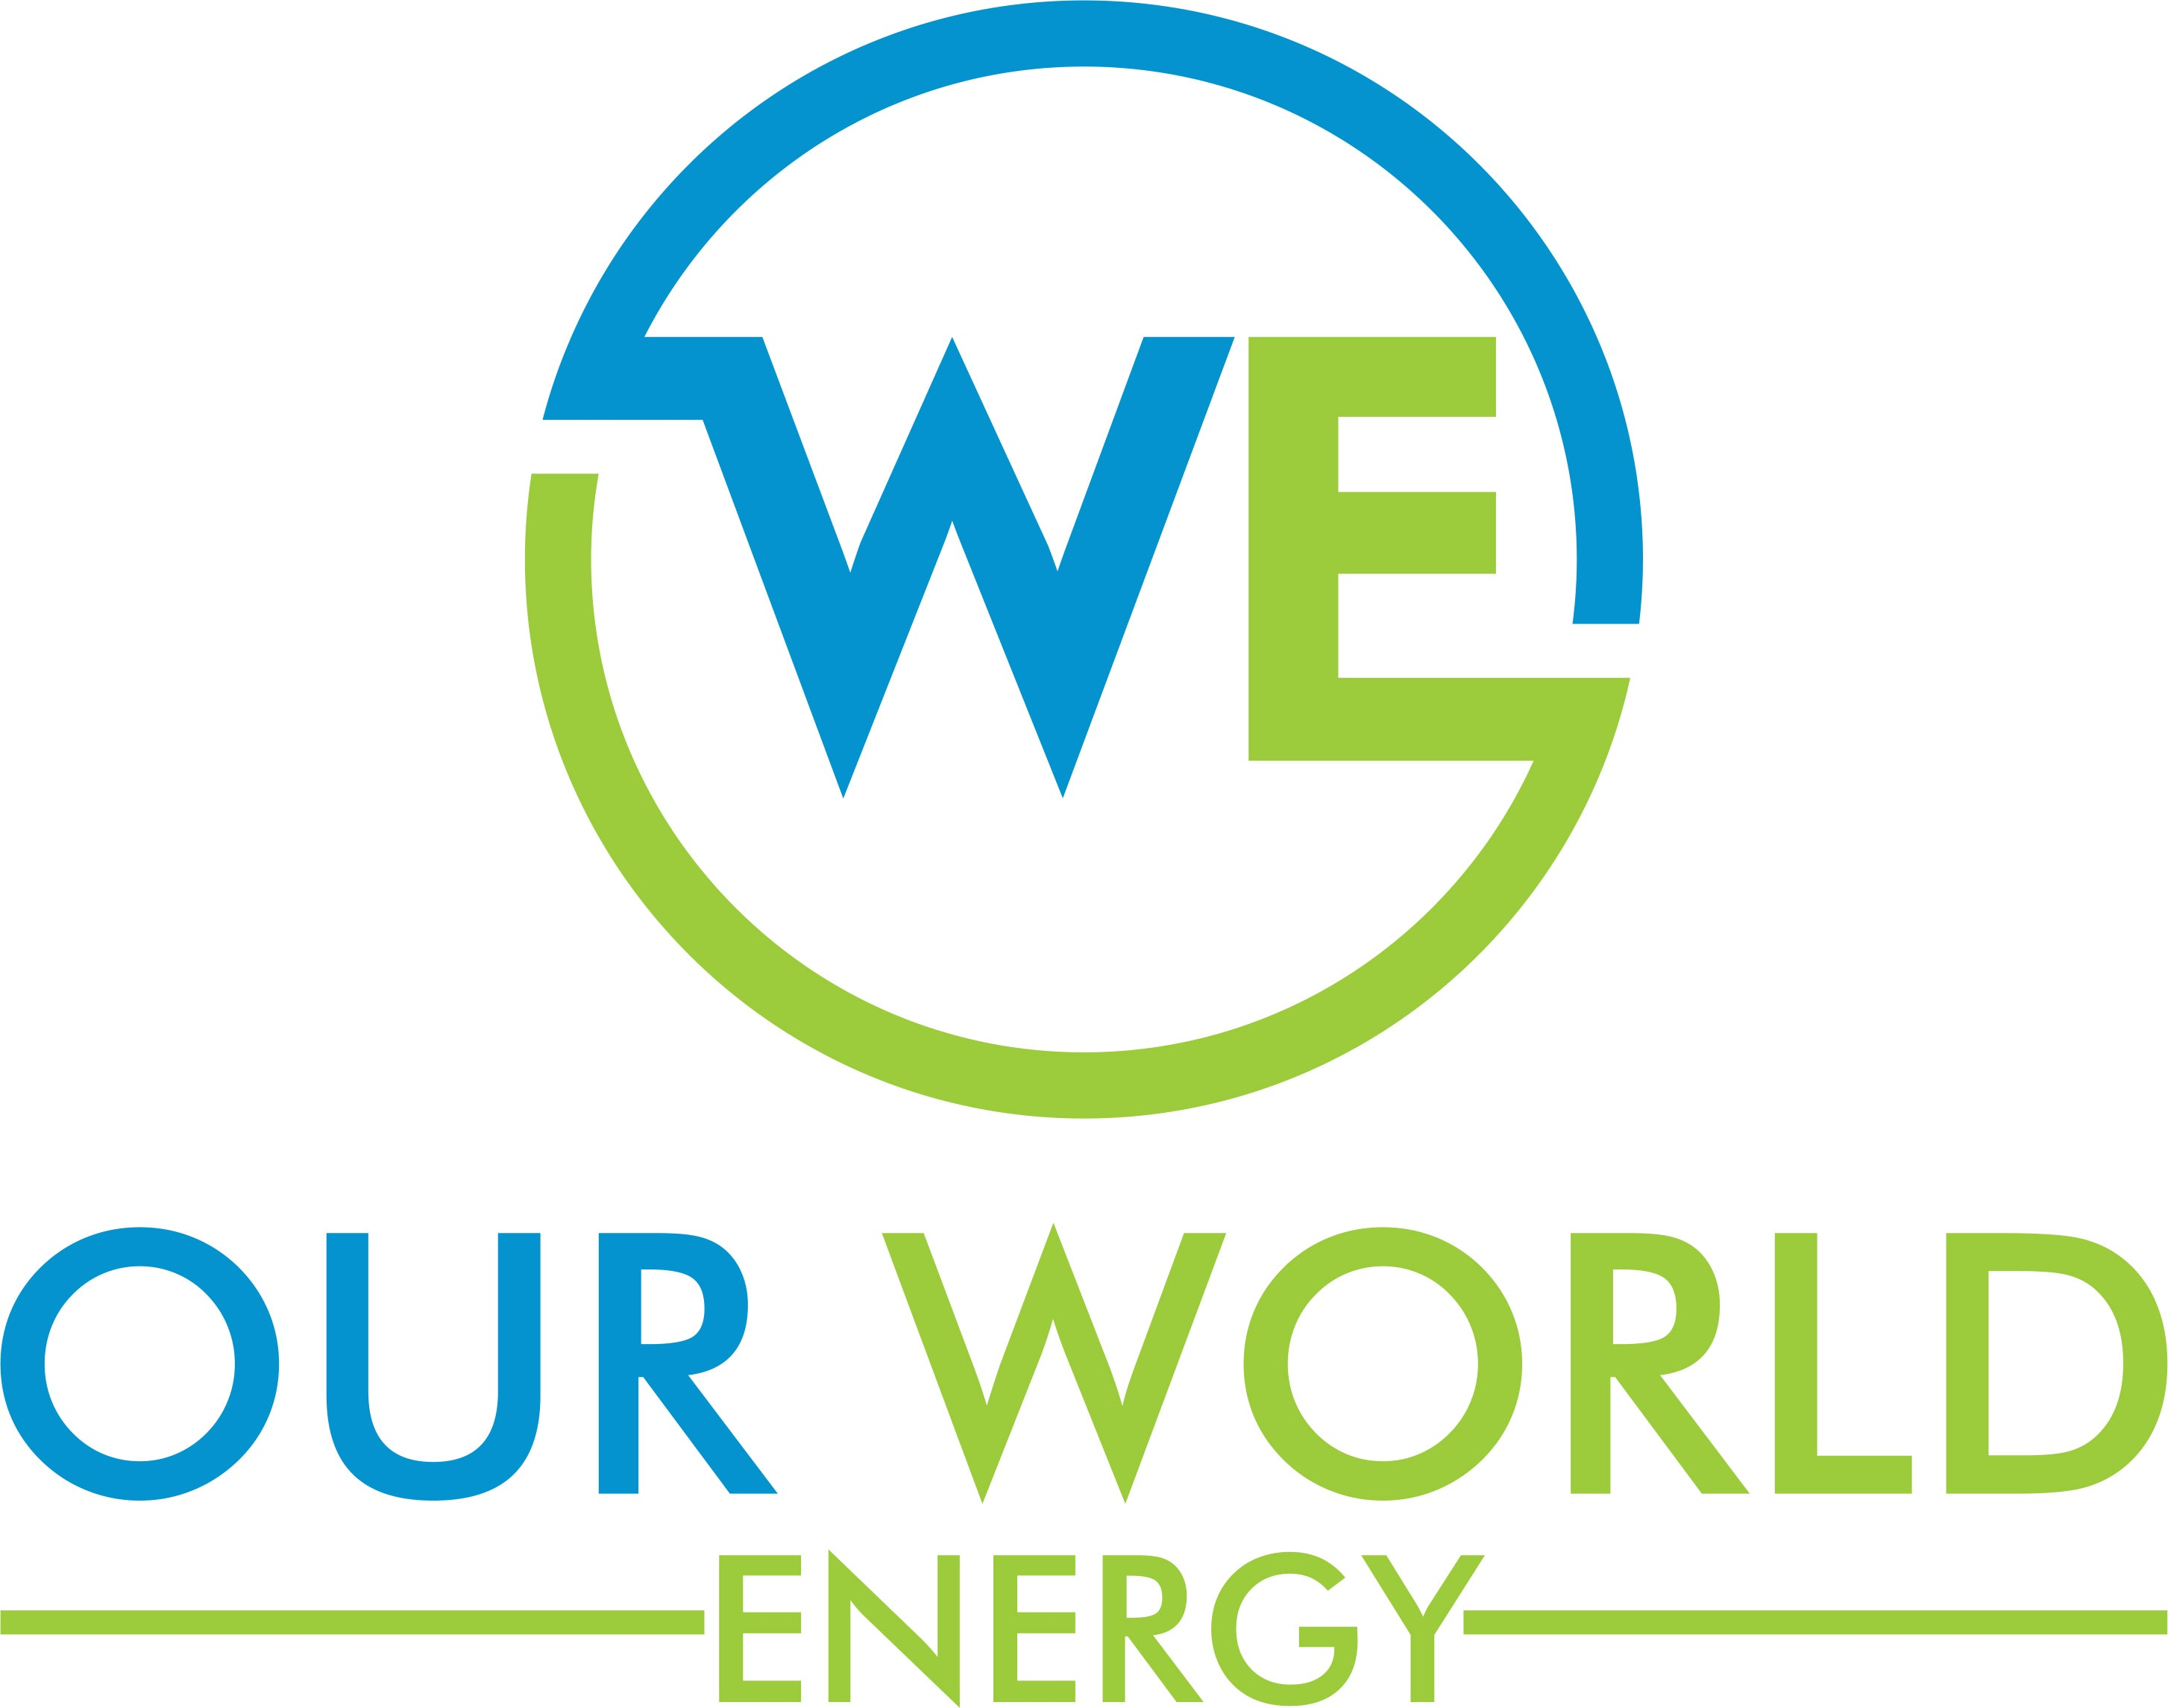 Our World Energy